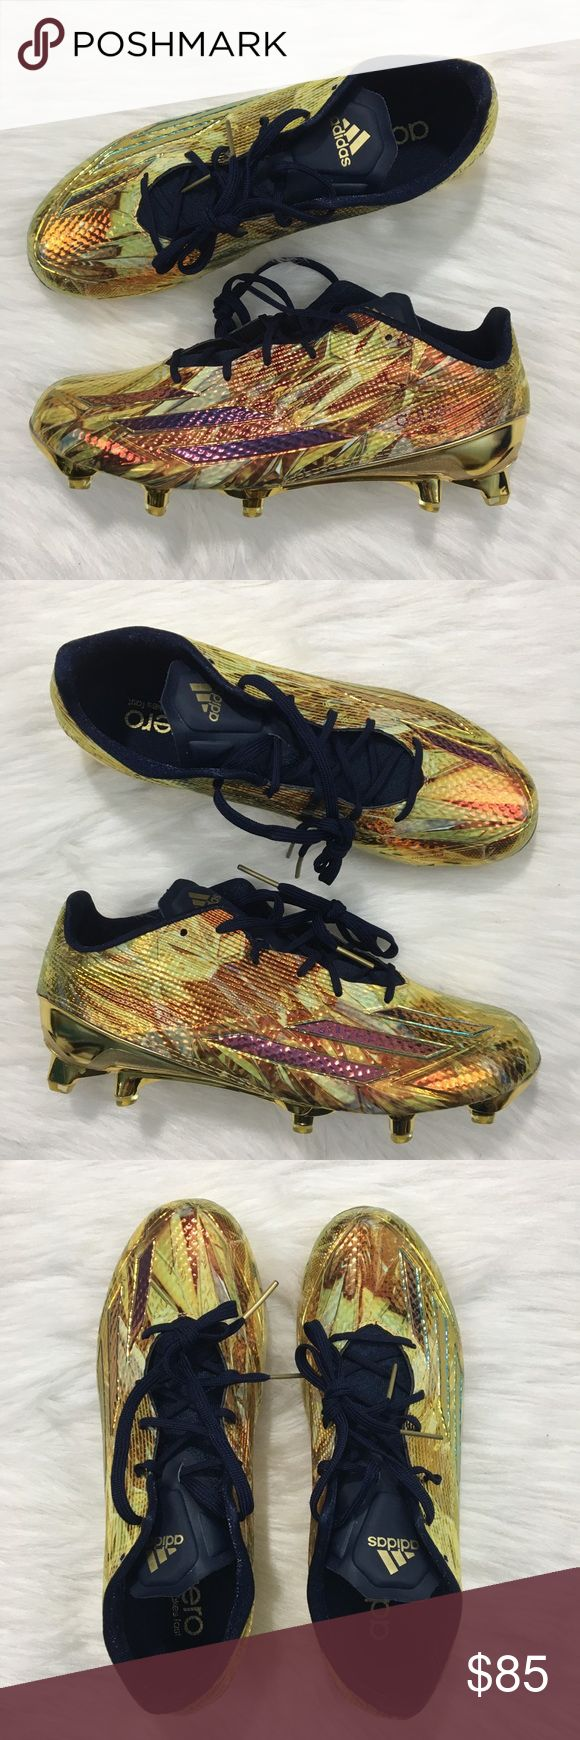 Adidas AdiZero 5-Star 5.0 Football Cleat Gold Brand new without box.Adidas AdiZero 5-Star 5.0 Football Cleats in a US MENS 8.5. Style code: AQ8177. Gold/Maroon colorway. Amazing metallic look throughout. Please inspect all photos carefully. Thanks for viewing! adidas Shoes Athletic Shoes